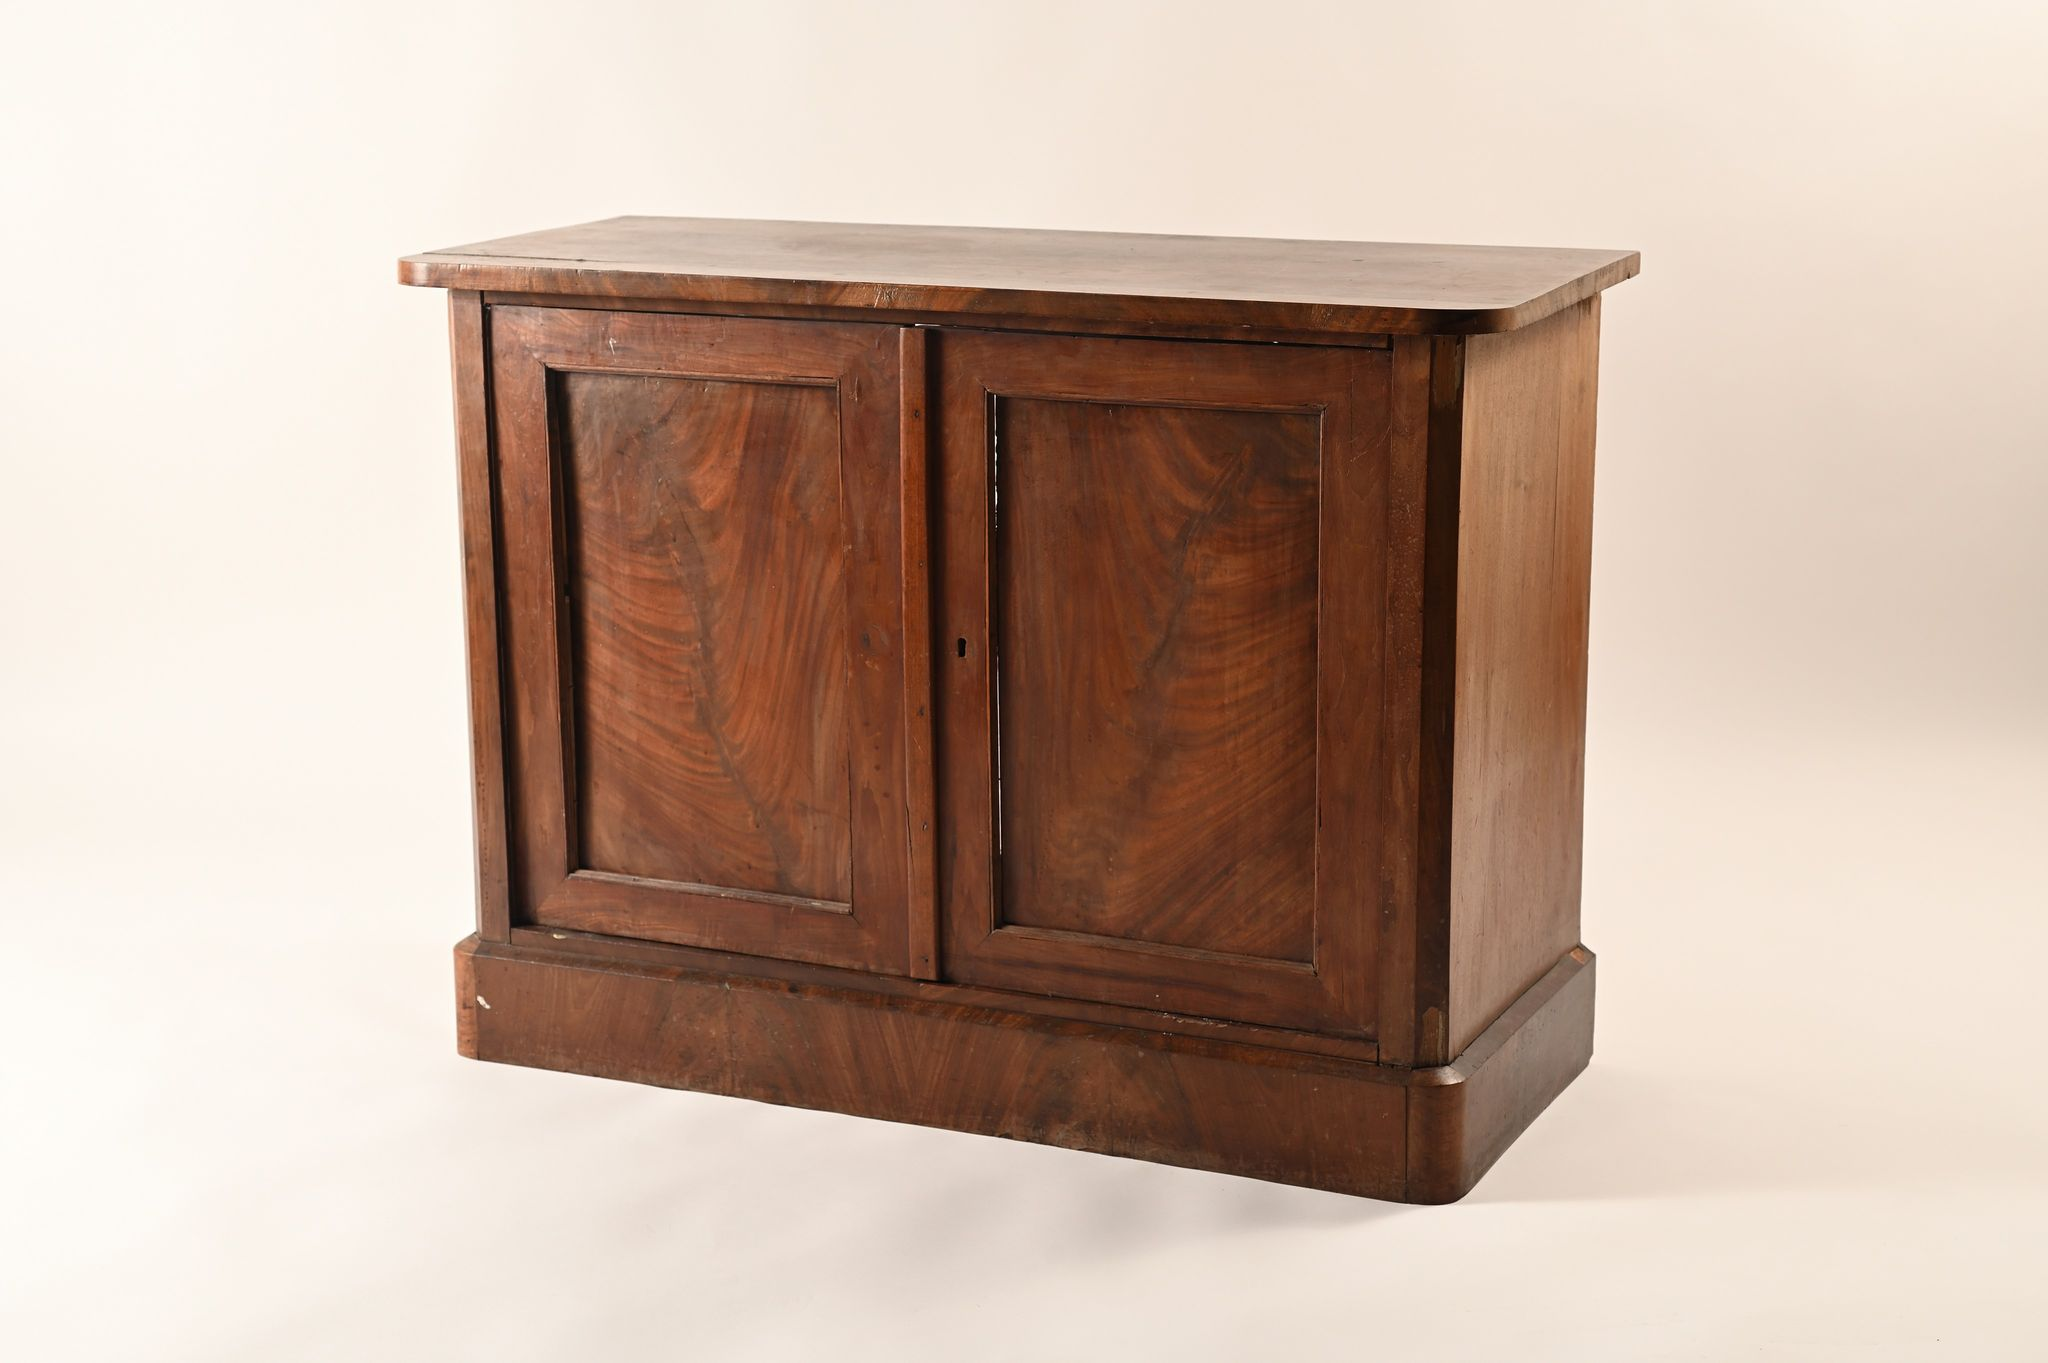 Shelf unit that hid the hiding place of Andries and Leni Hoffman